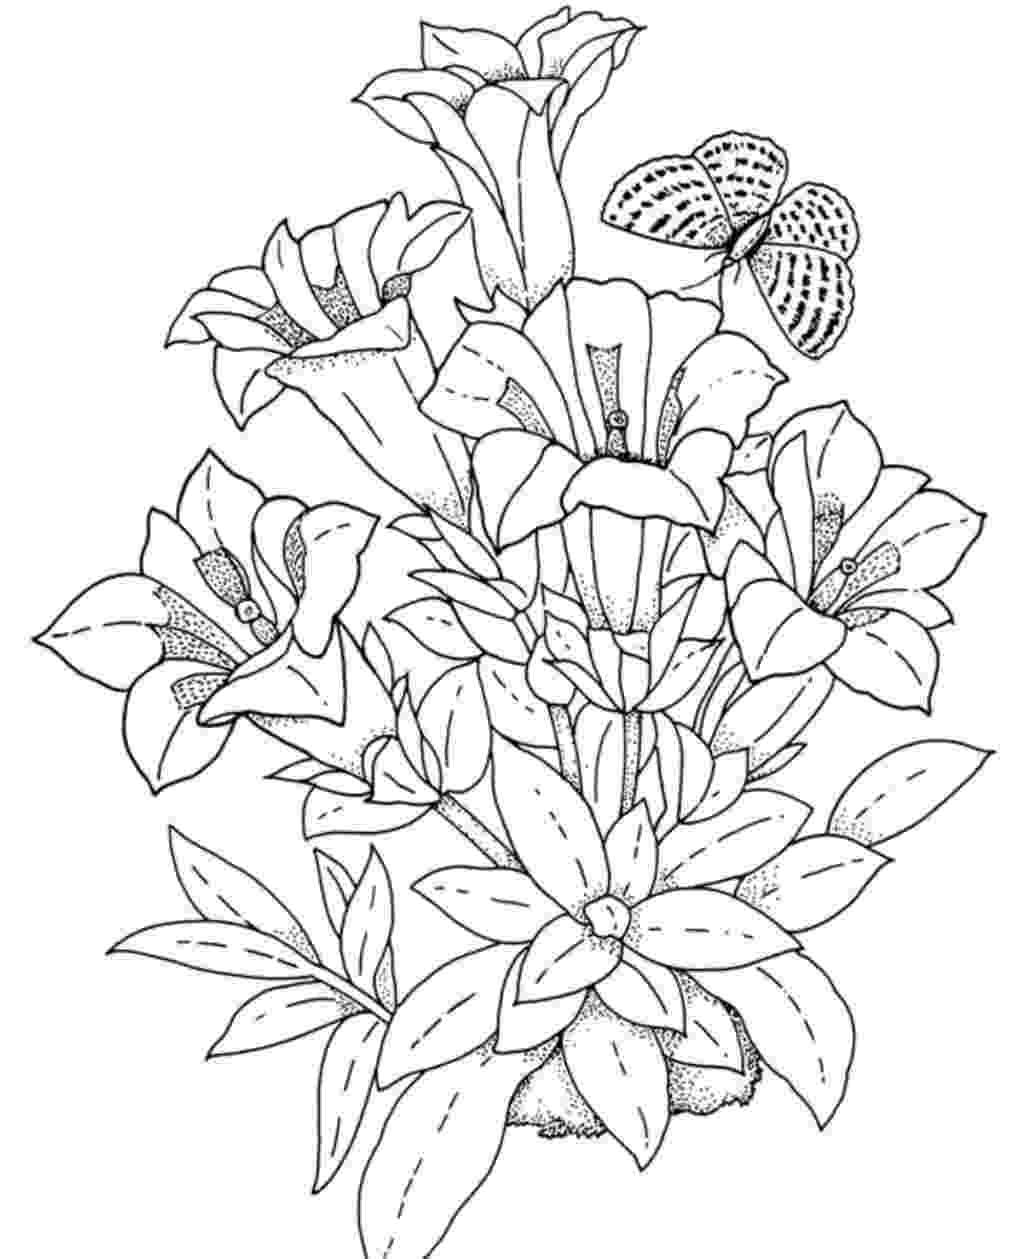 flower coloring book detailed flower coloring pages to download and print for free flower book coloring